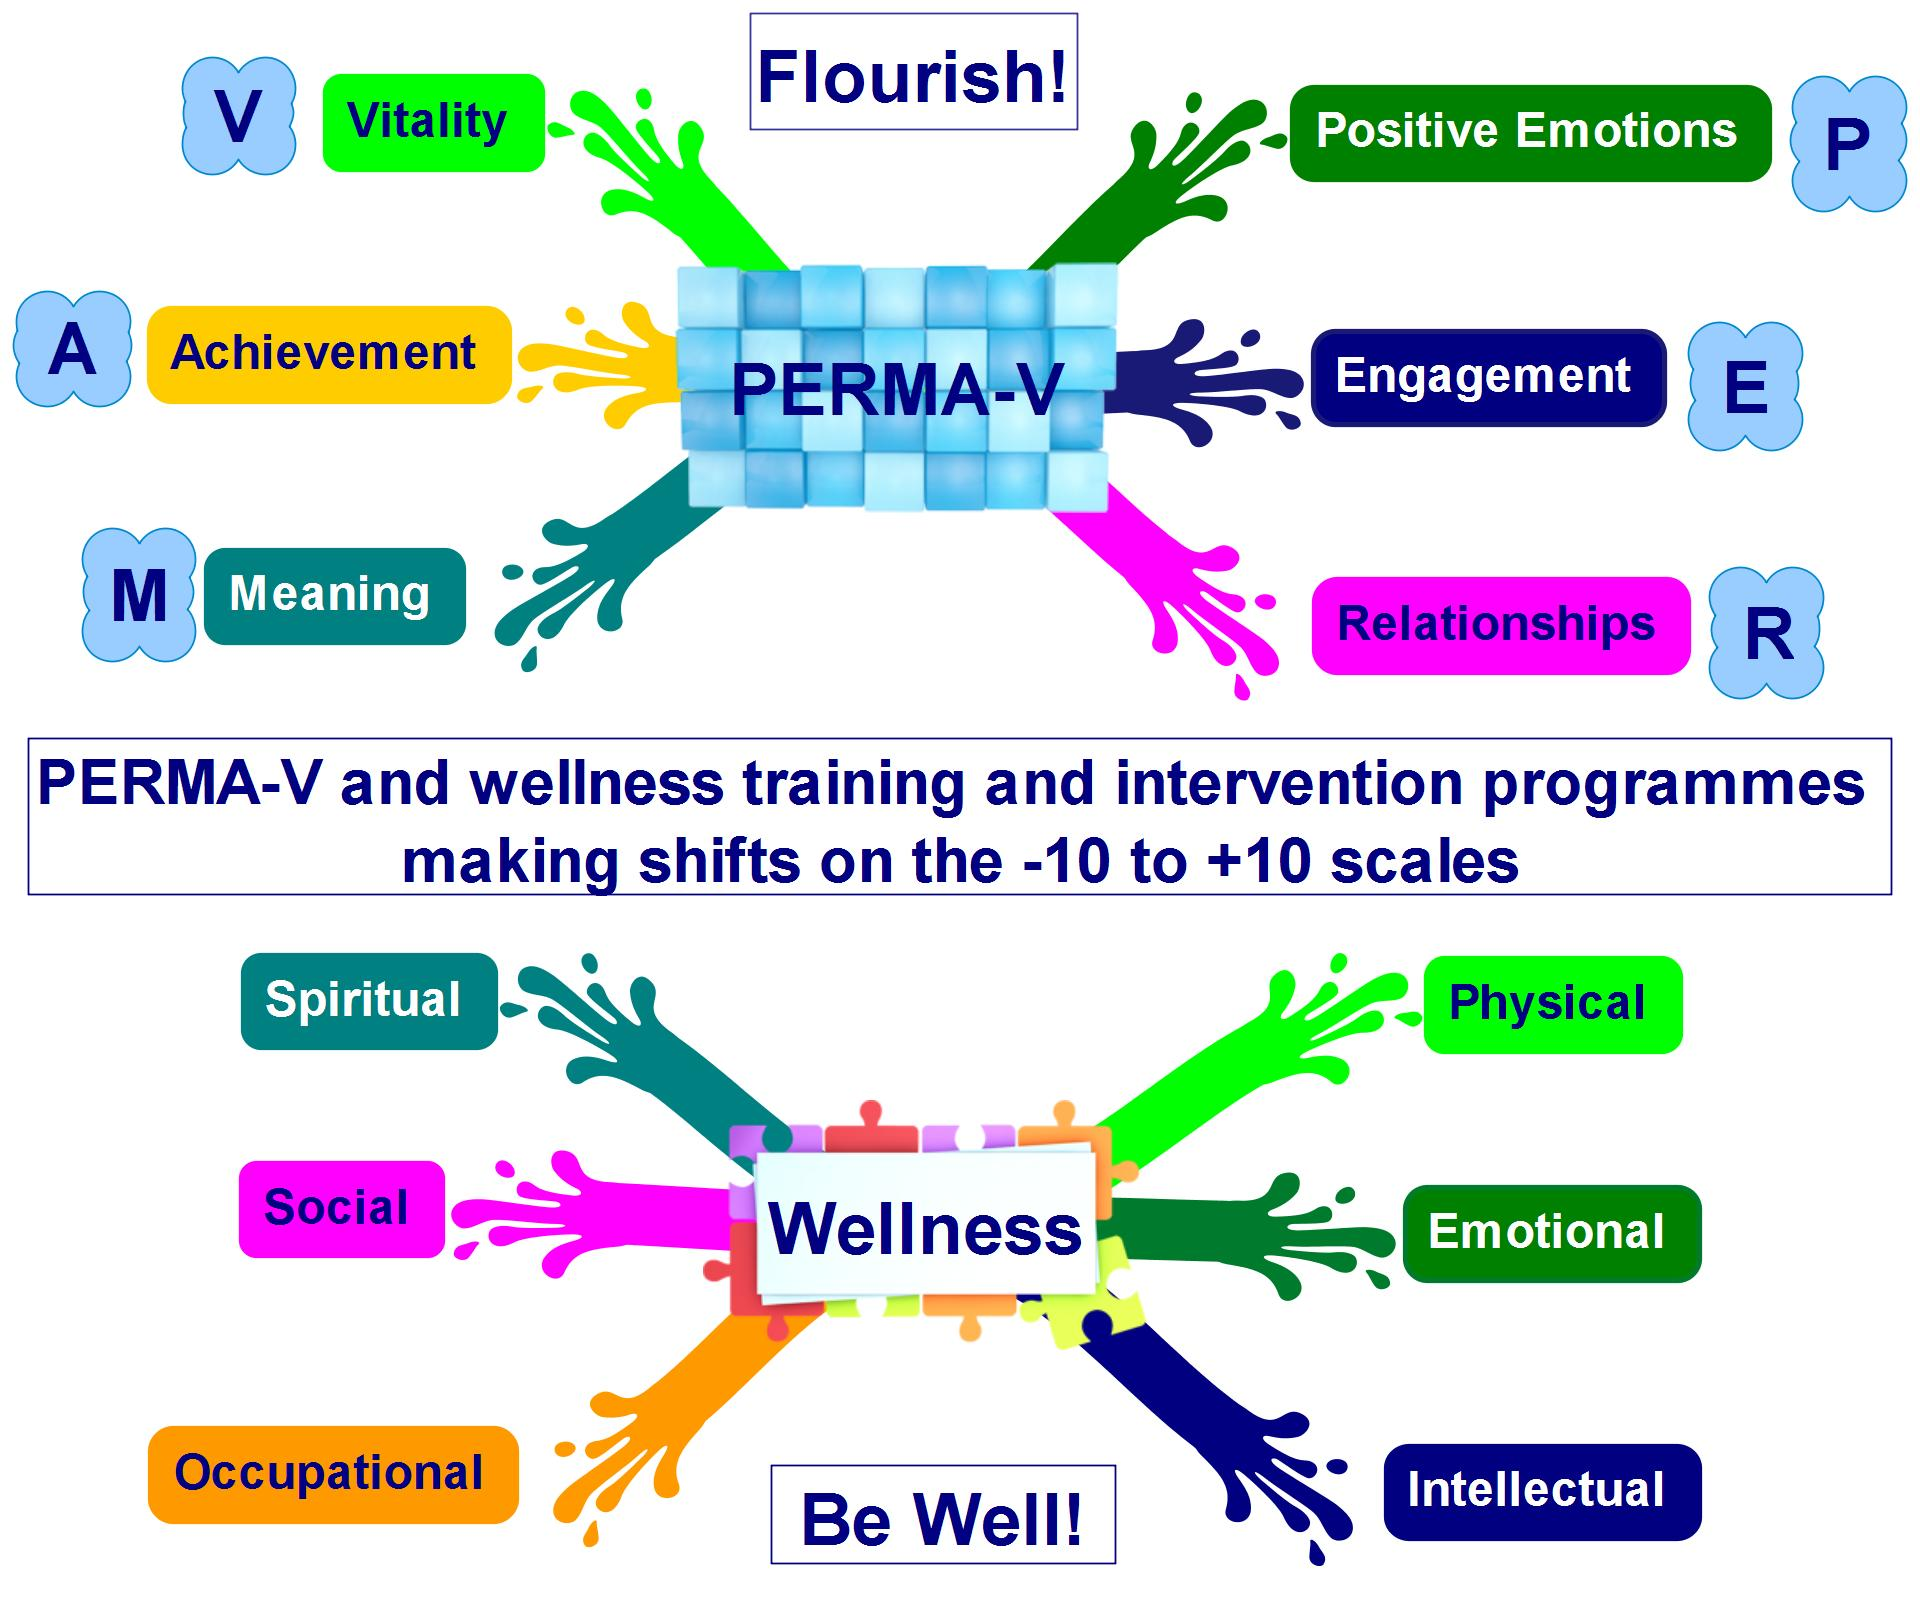 Perma v wellness combinationeg cognitive behavioral therapy cbt has a significant part to play in positive psychology and our approach and it is really easy to learn and use malvernweather Gallery